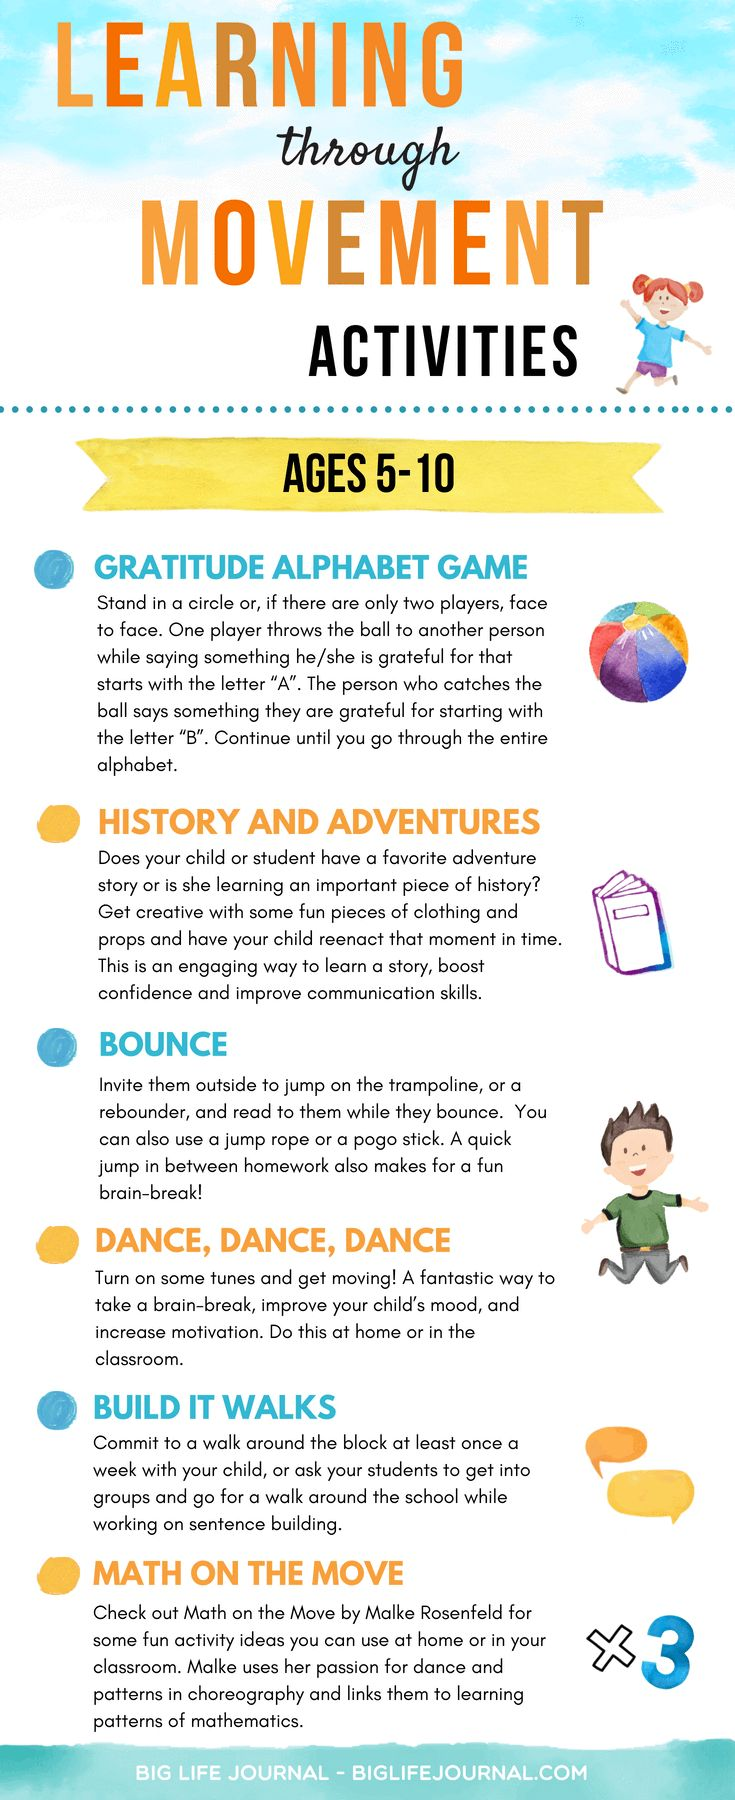 How to raise smart kids through movement 15 agespecific